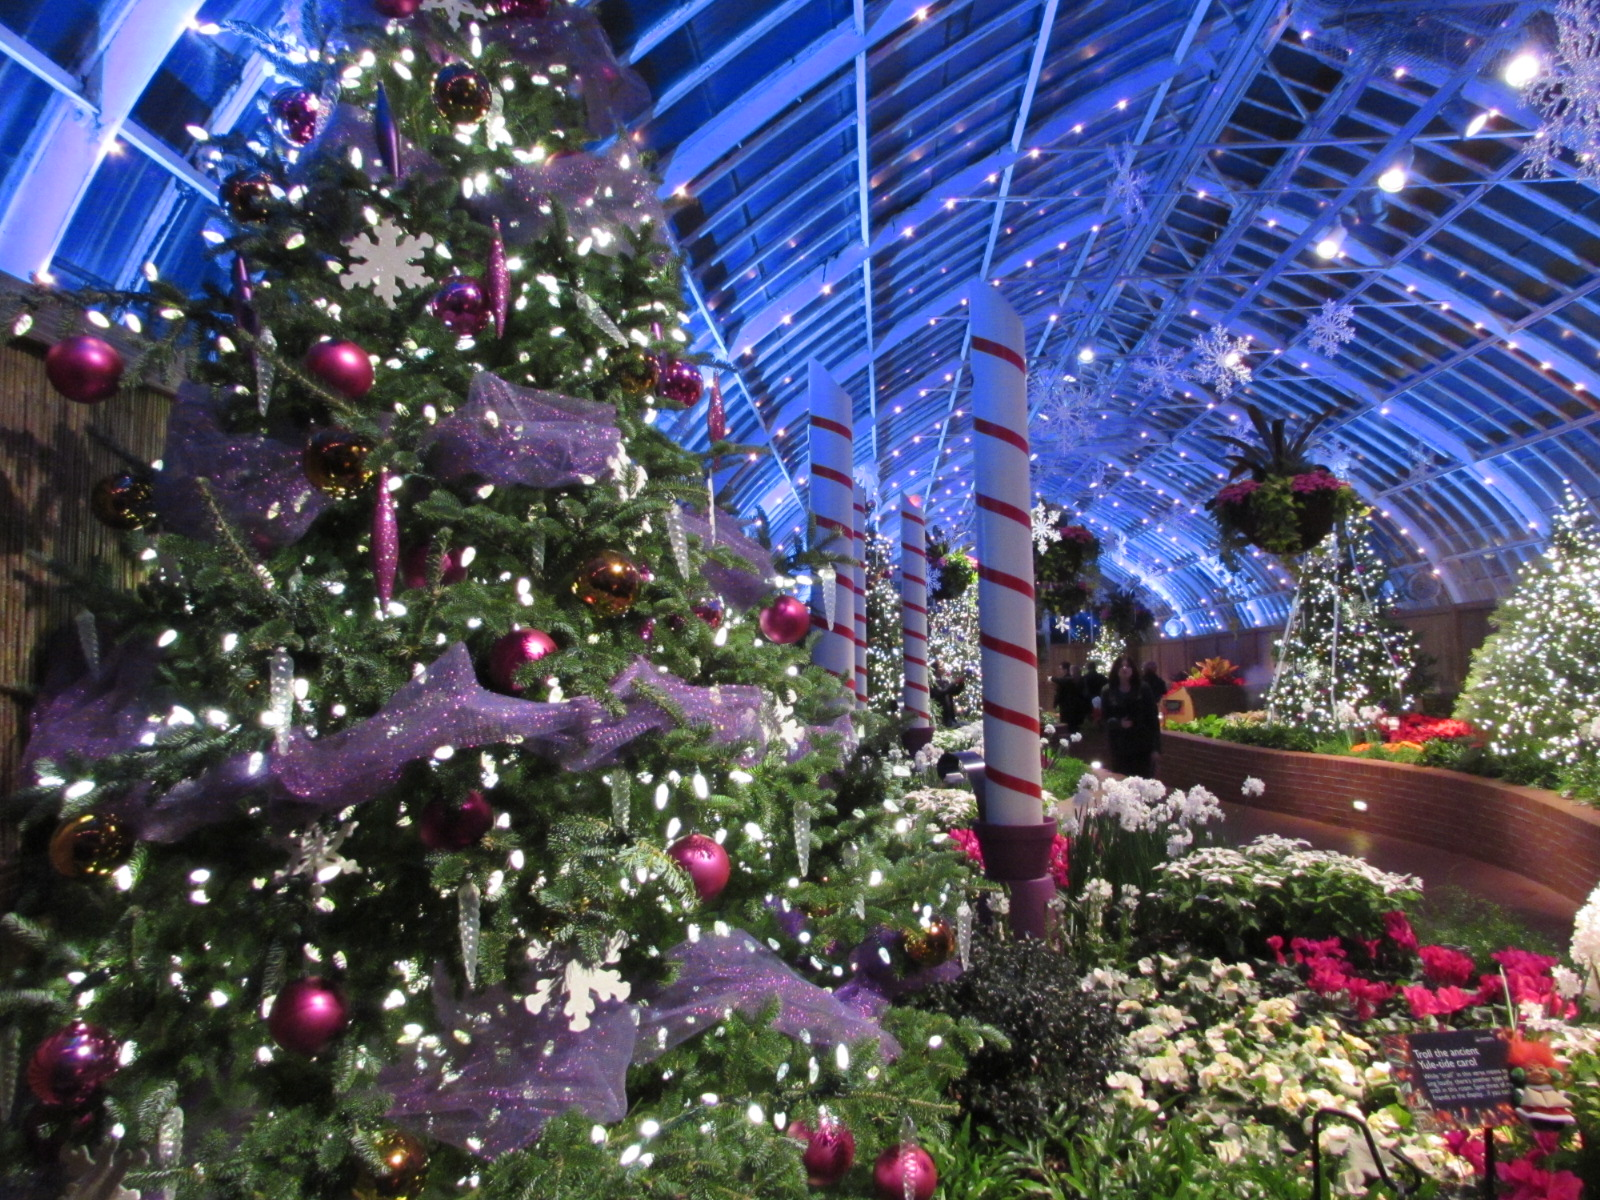 Phipps conservatory winter flower show pittsburgh pa interesting the phipps conservatory winter flower show and light garden runs until january 10th we highly recommend visiting this world class attraction mightylinksfo